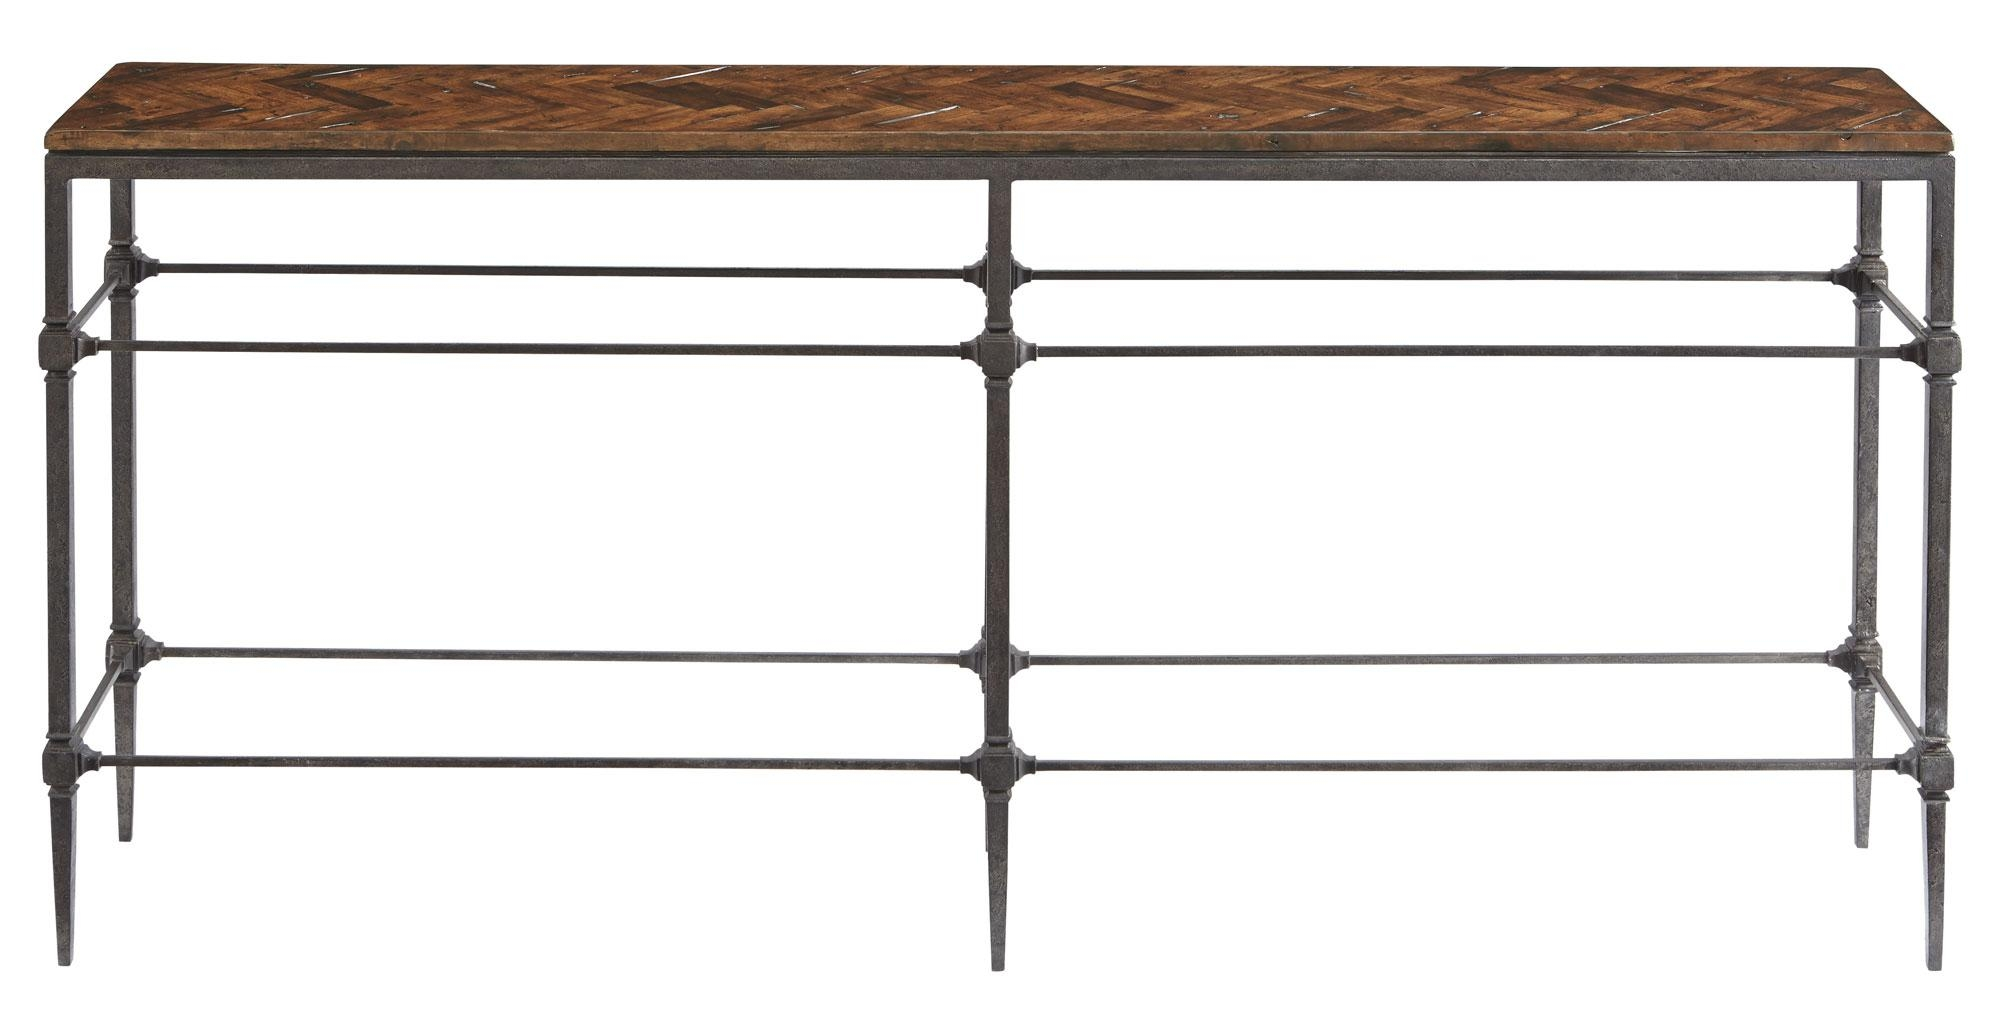 Console Table | Bernhardt Regarding Bernhardt Console Tables (Image 10 of 20)